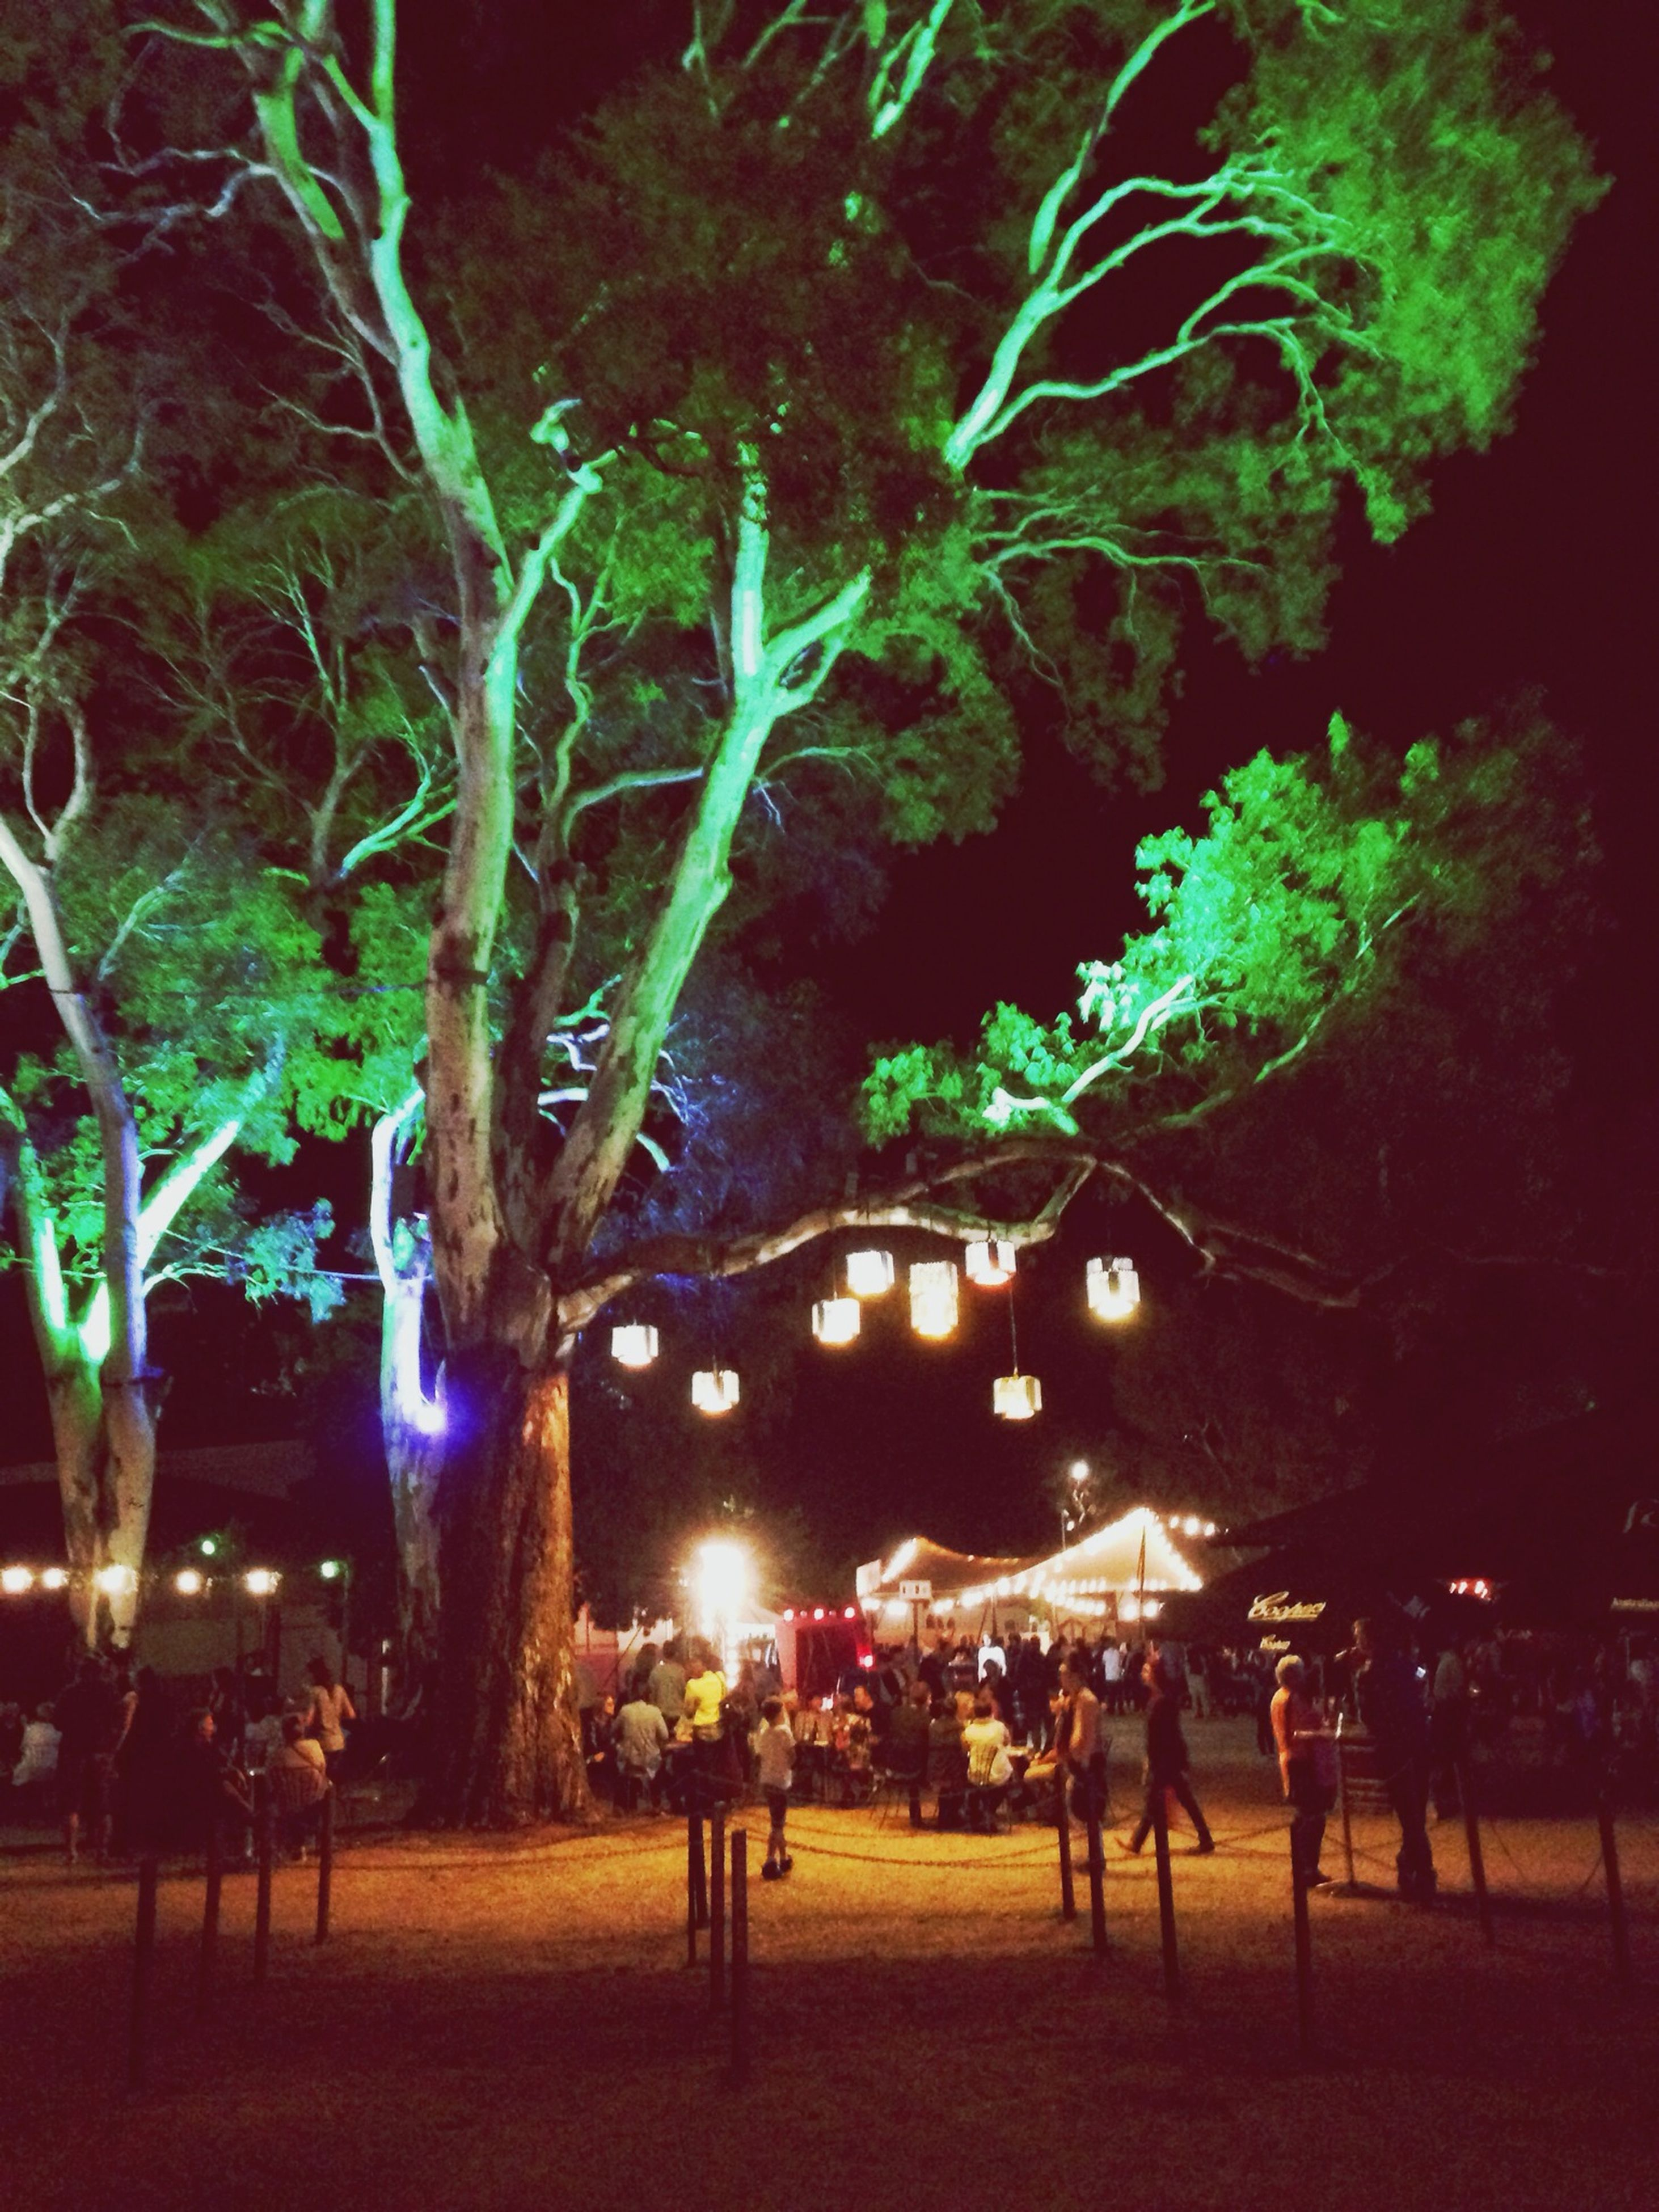 illuminated, night, tree, celebration, lighting equipment, arts culture and entertainment, decoration, christmas, incidental people, outdoors, street light, large group of people, tradition, light - natural phenomenon, leisure activity, building exterior, sky, men, lifestyles